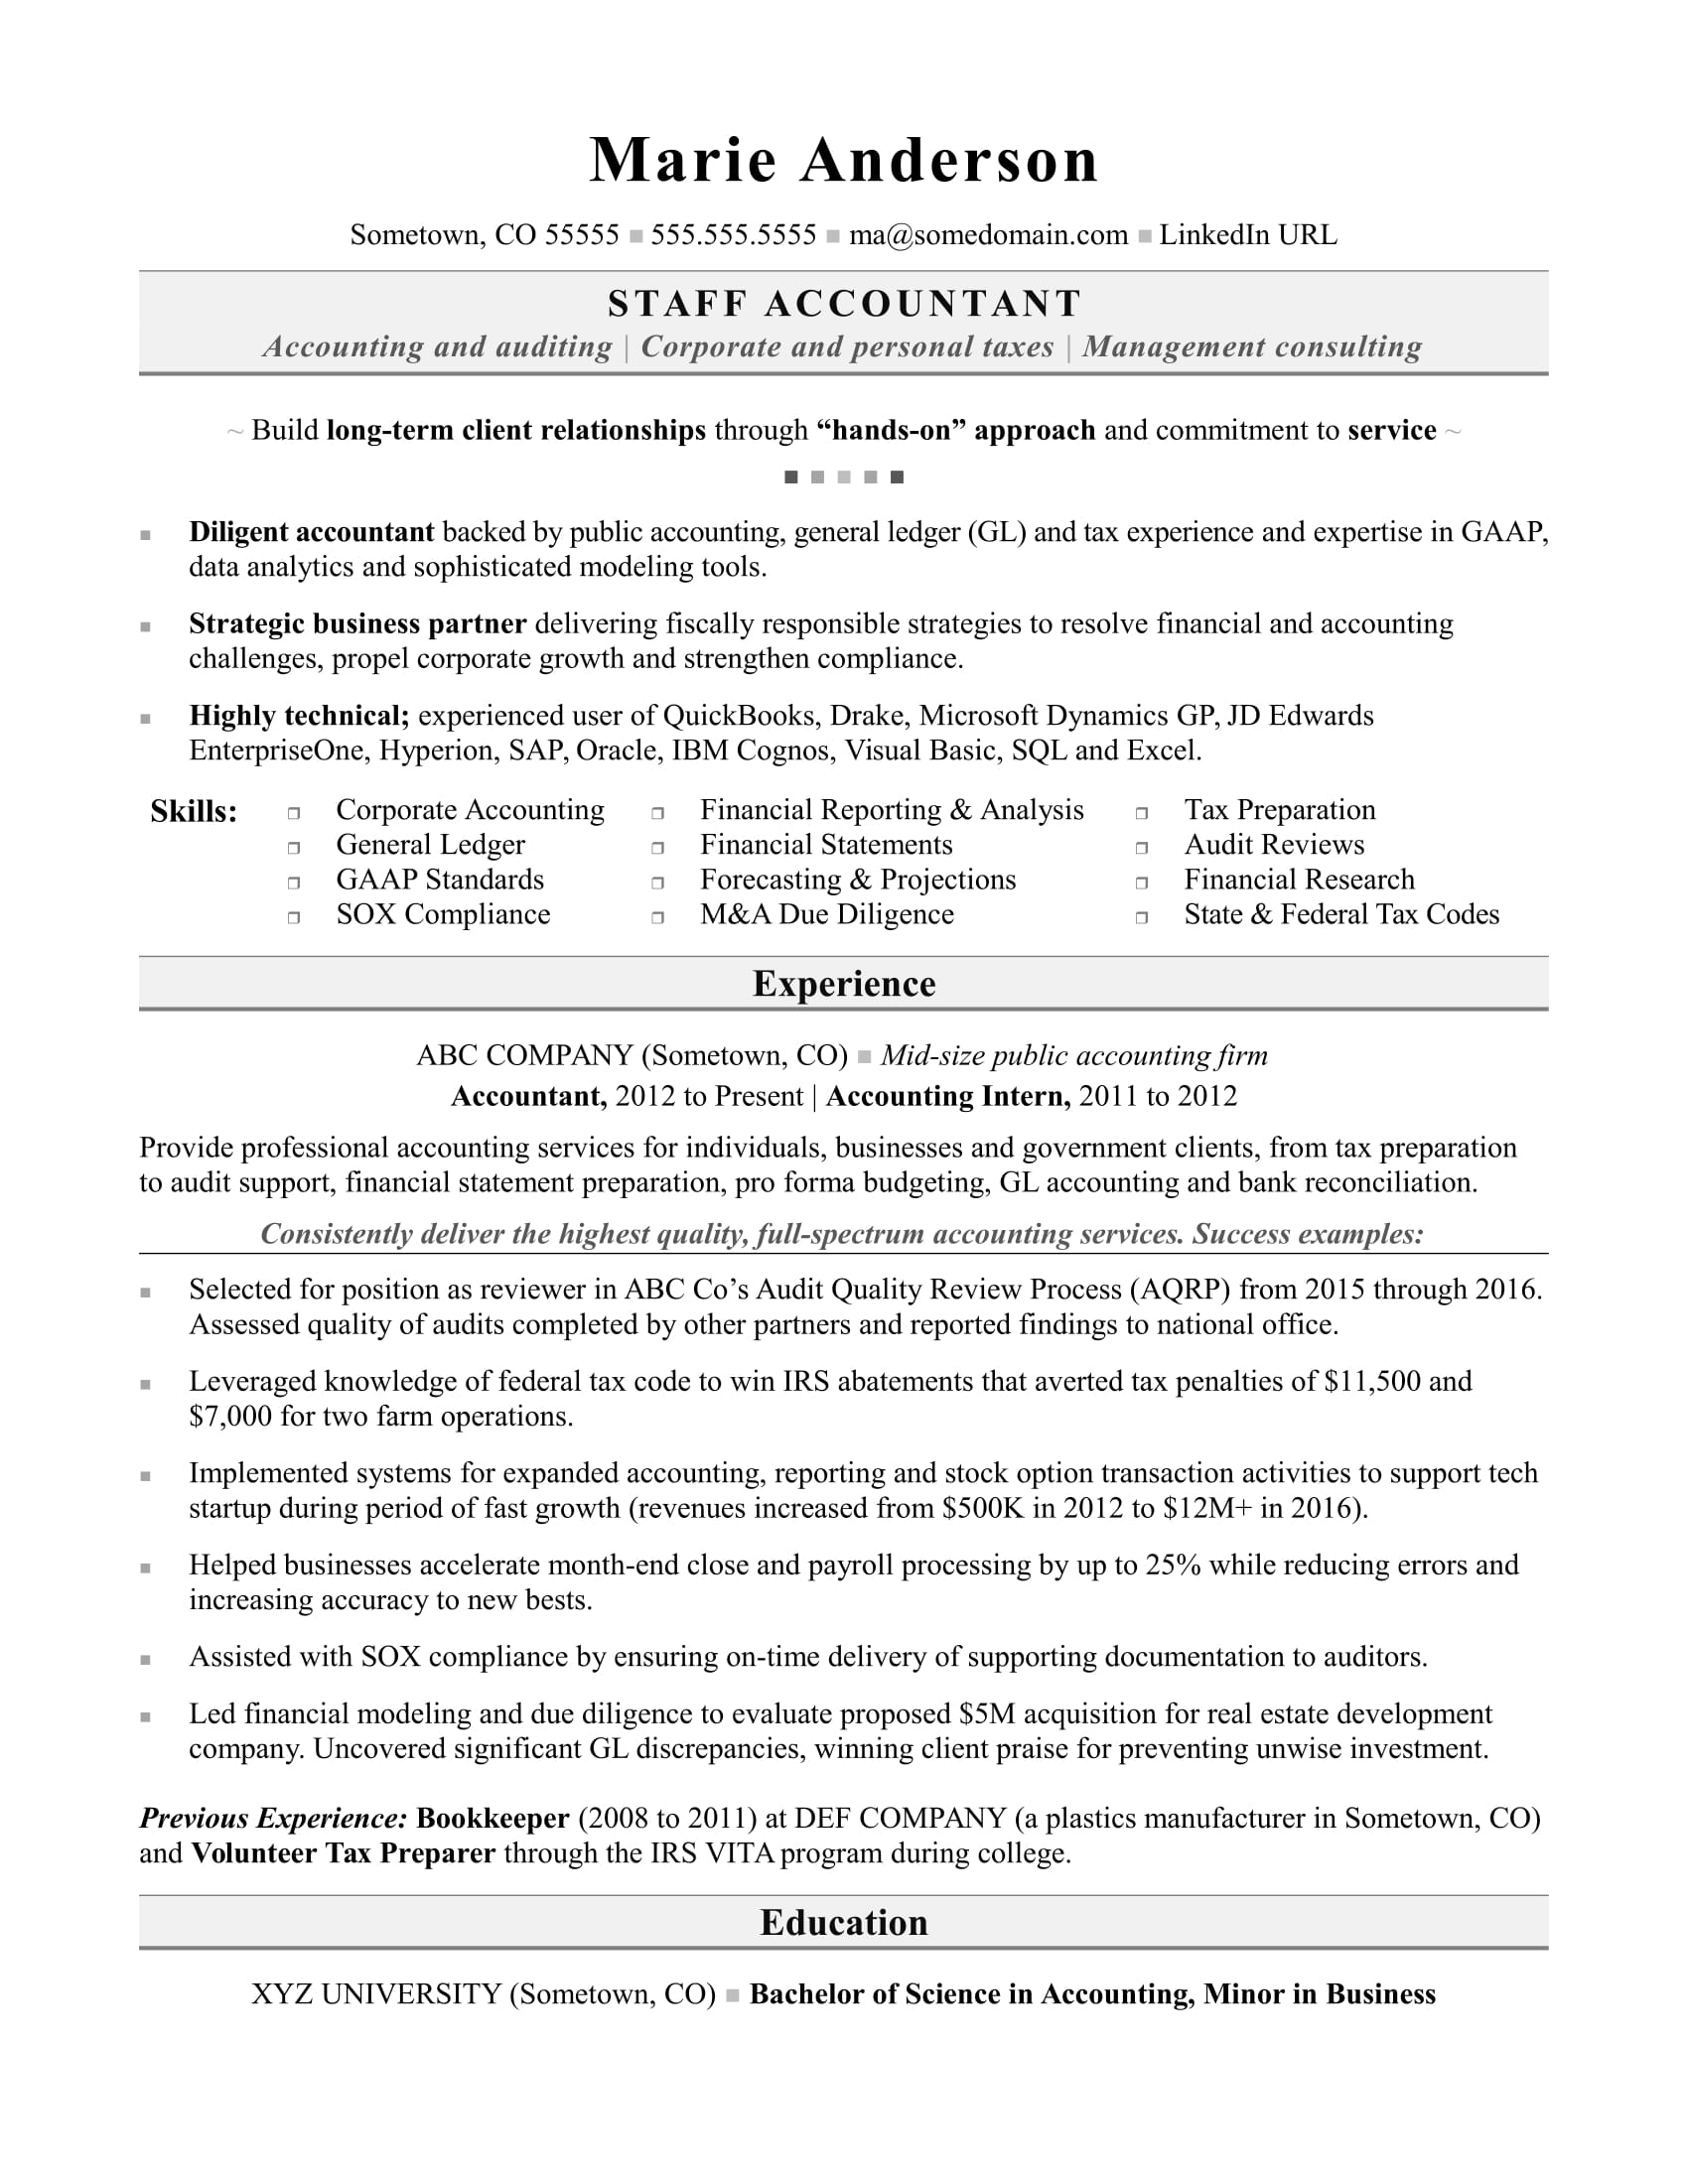 accounting resume sample monster staff accountant amazing samples objective for yahoo Resume Staff Accountant Resume